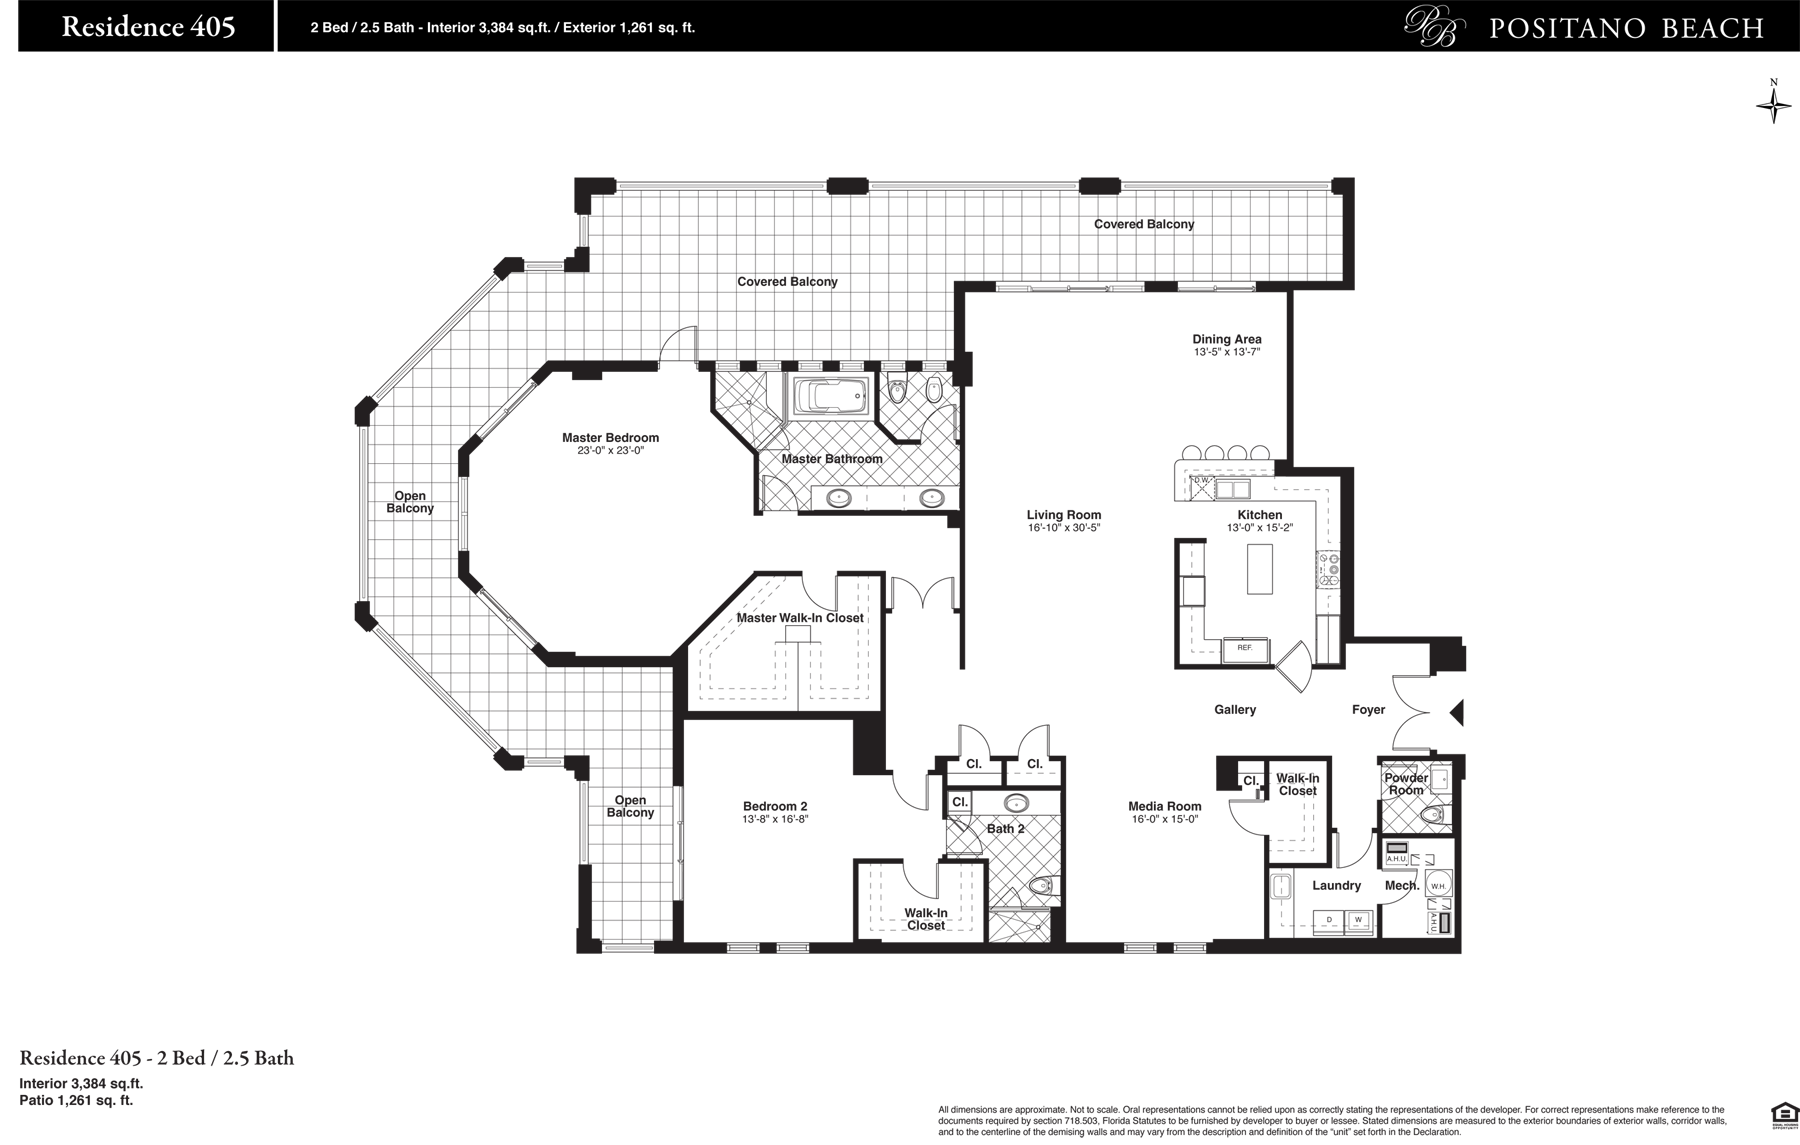 Positano Beach - Floorplan 8